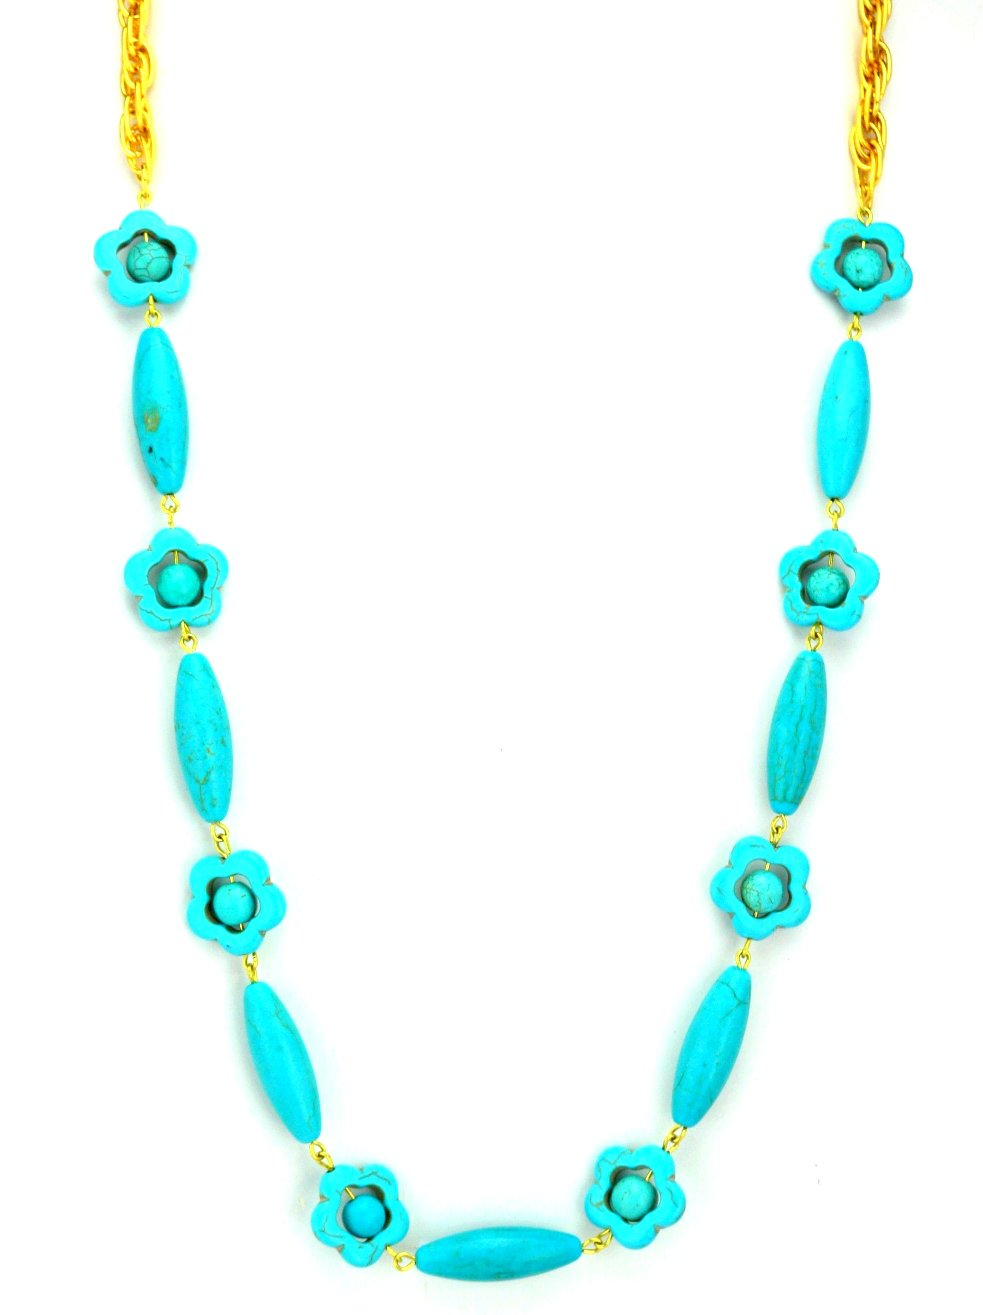 Turquoise Dyed Howlite Hand Linked Necklace Adjustable Gift Boxed by Artist Gay Isber USA